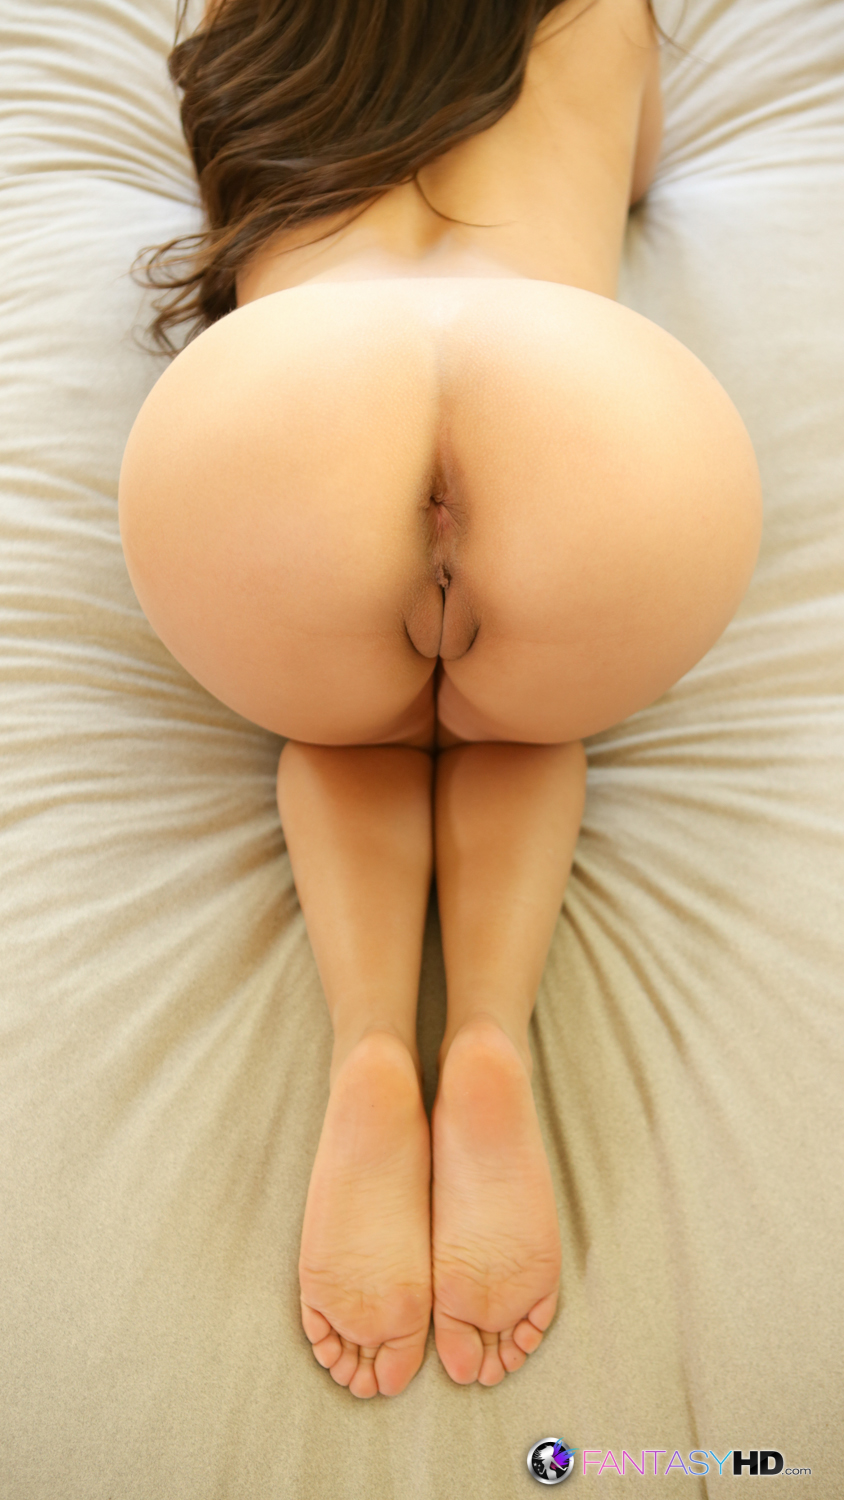 Best of anal creampies compilation vol 1 full movie bangcom 4